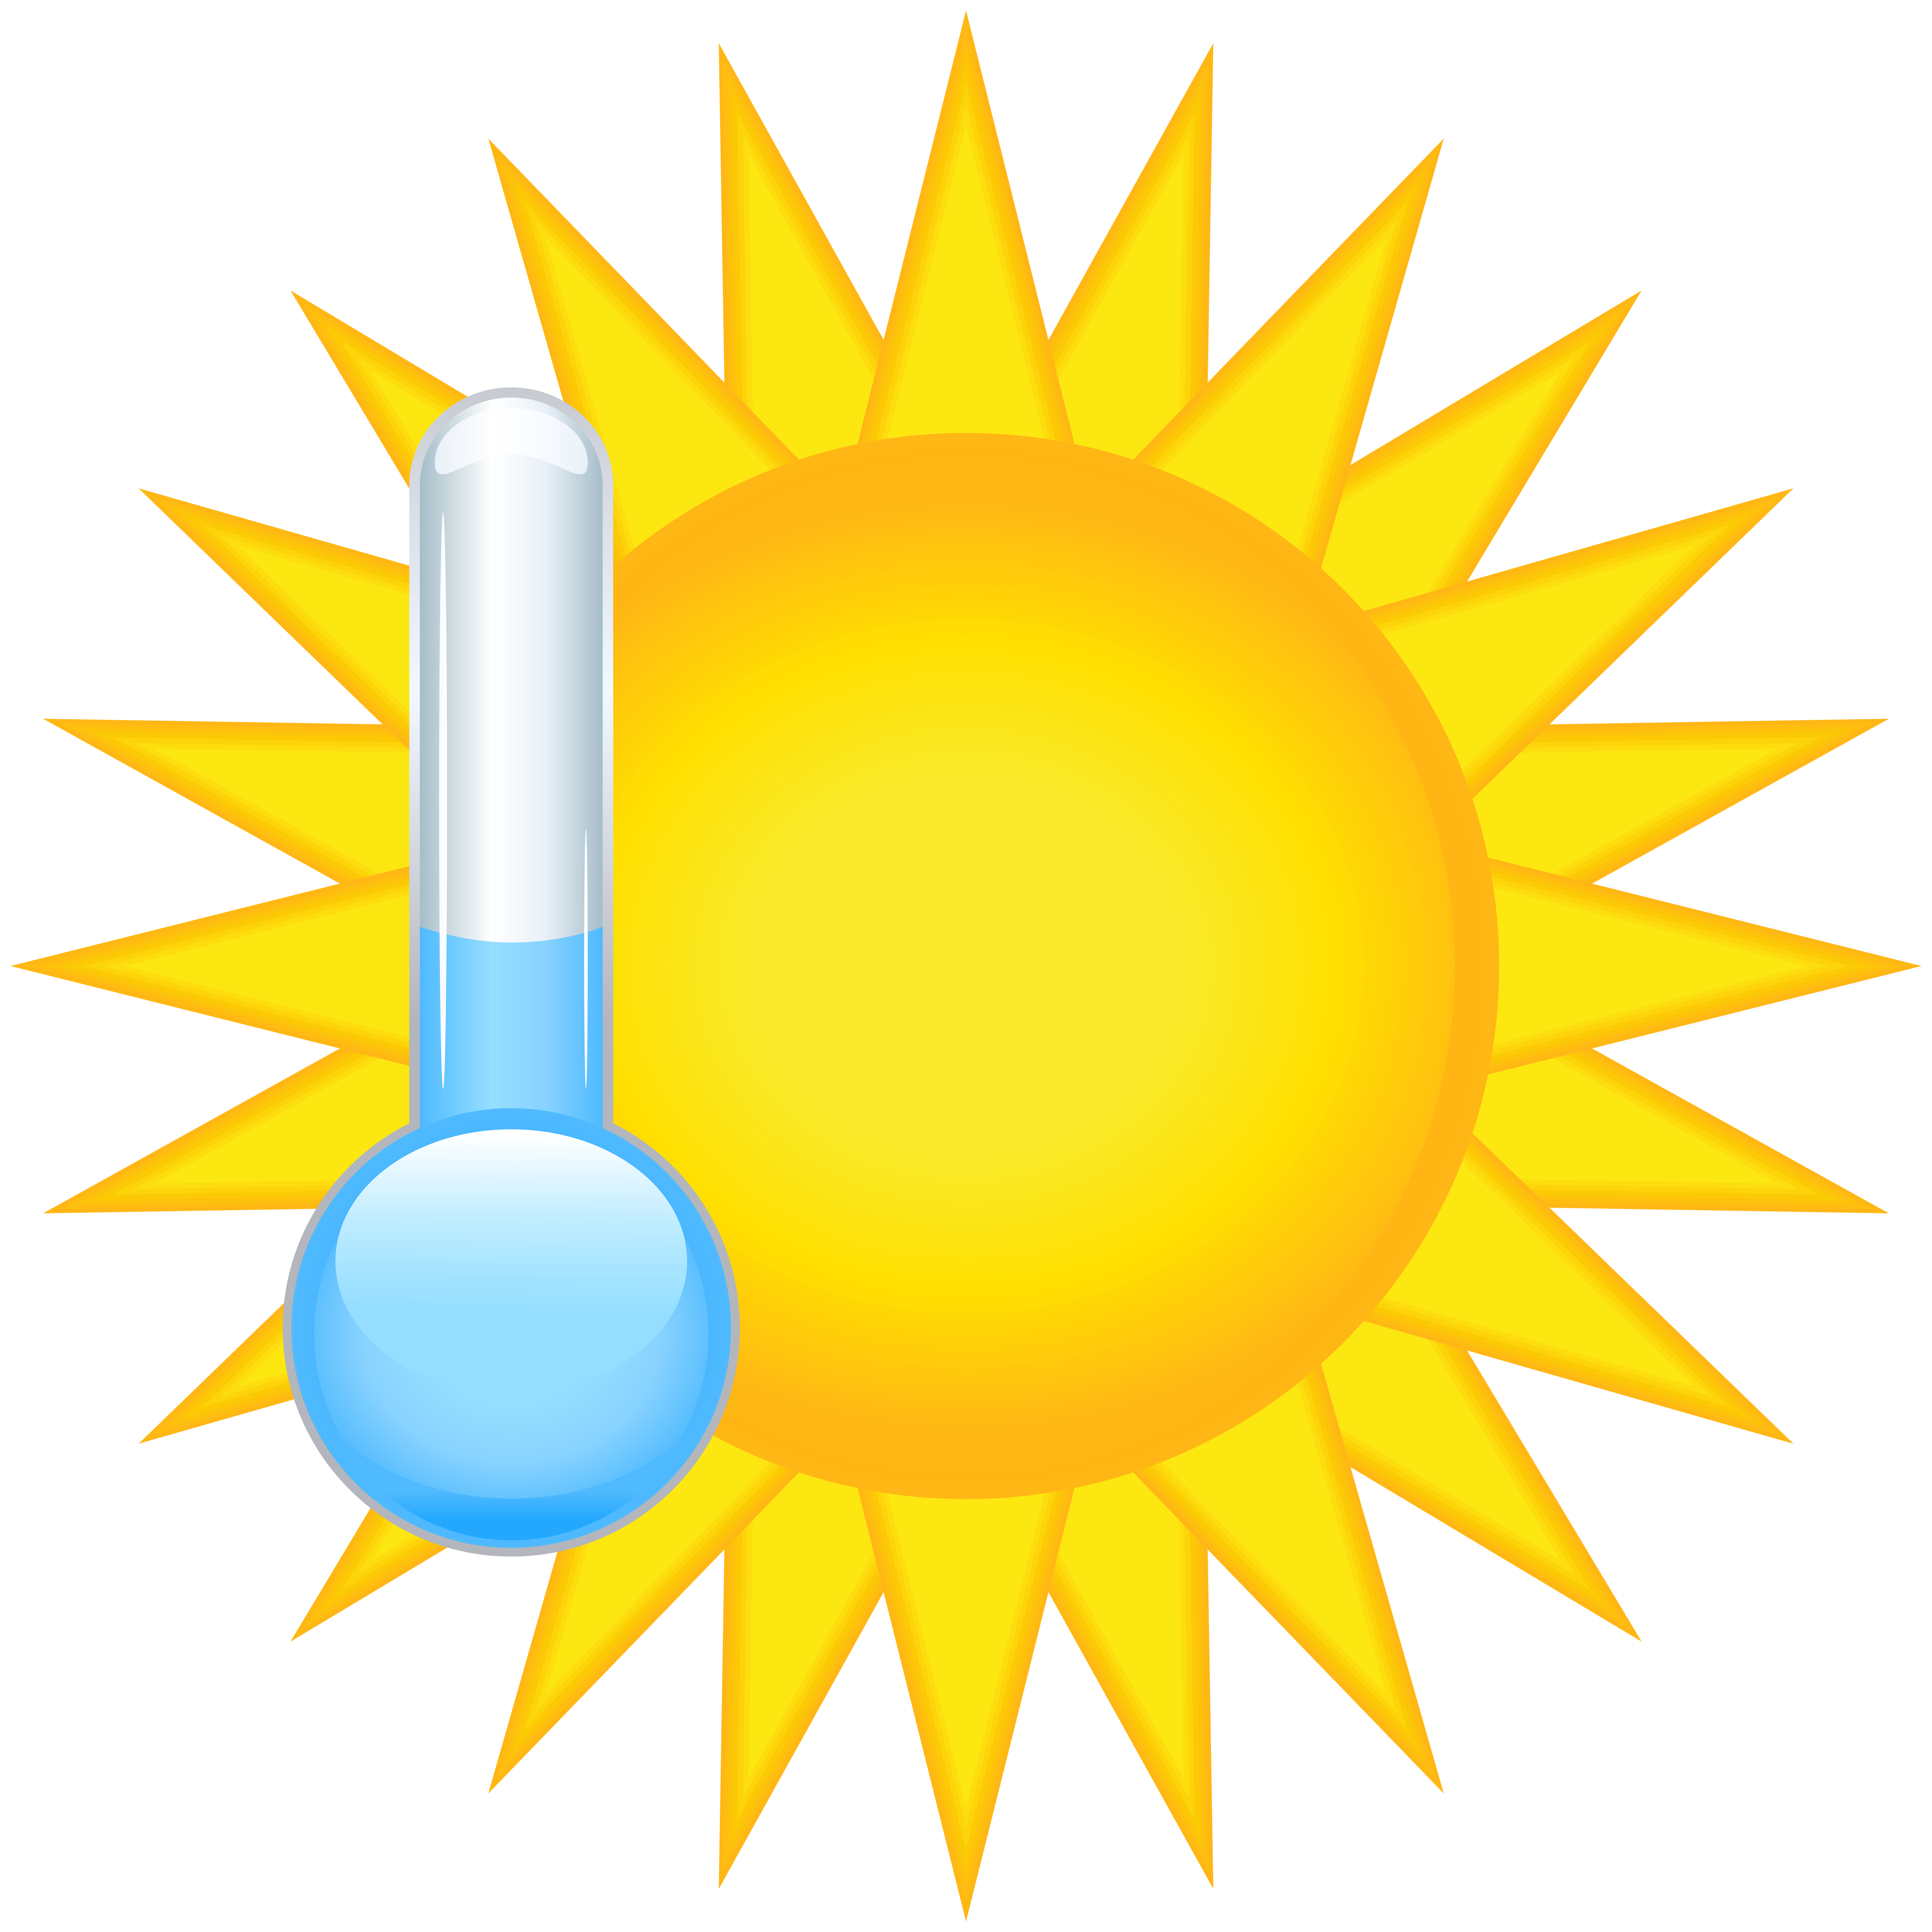 Cold weather icon png. Website clipart commercialization